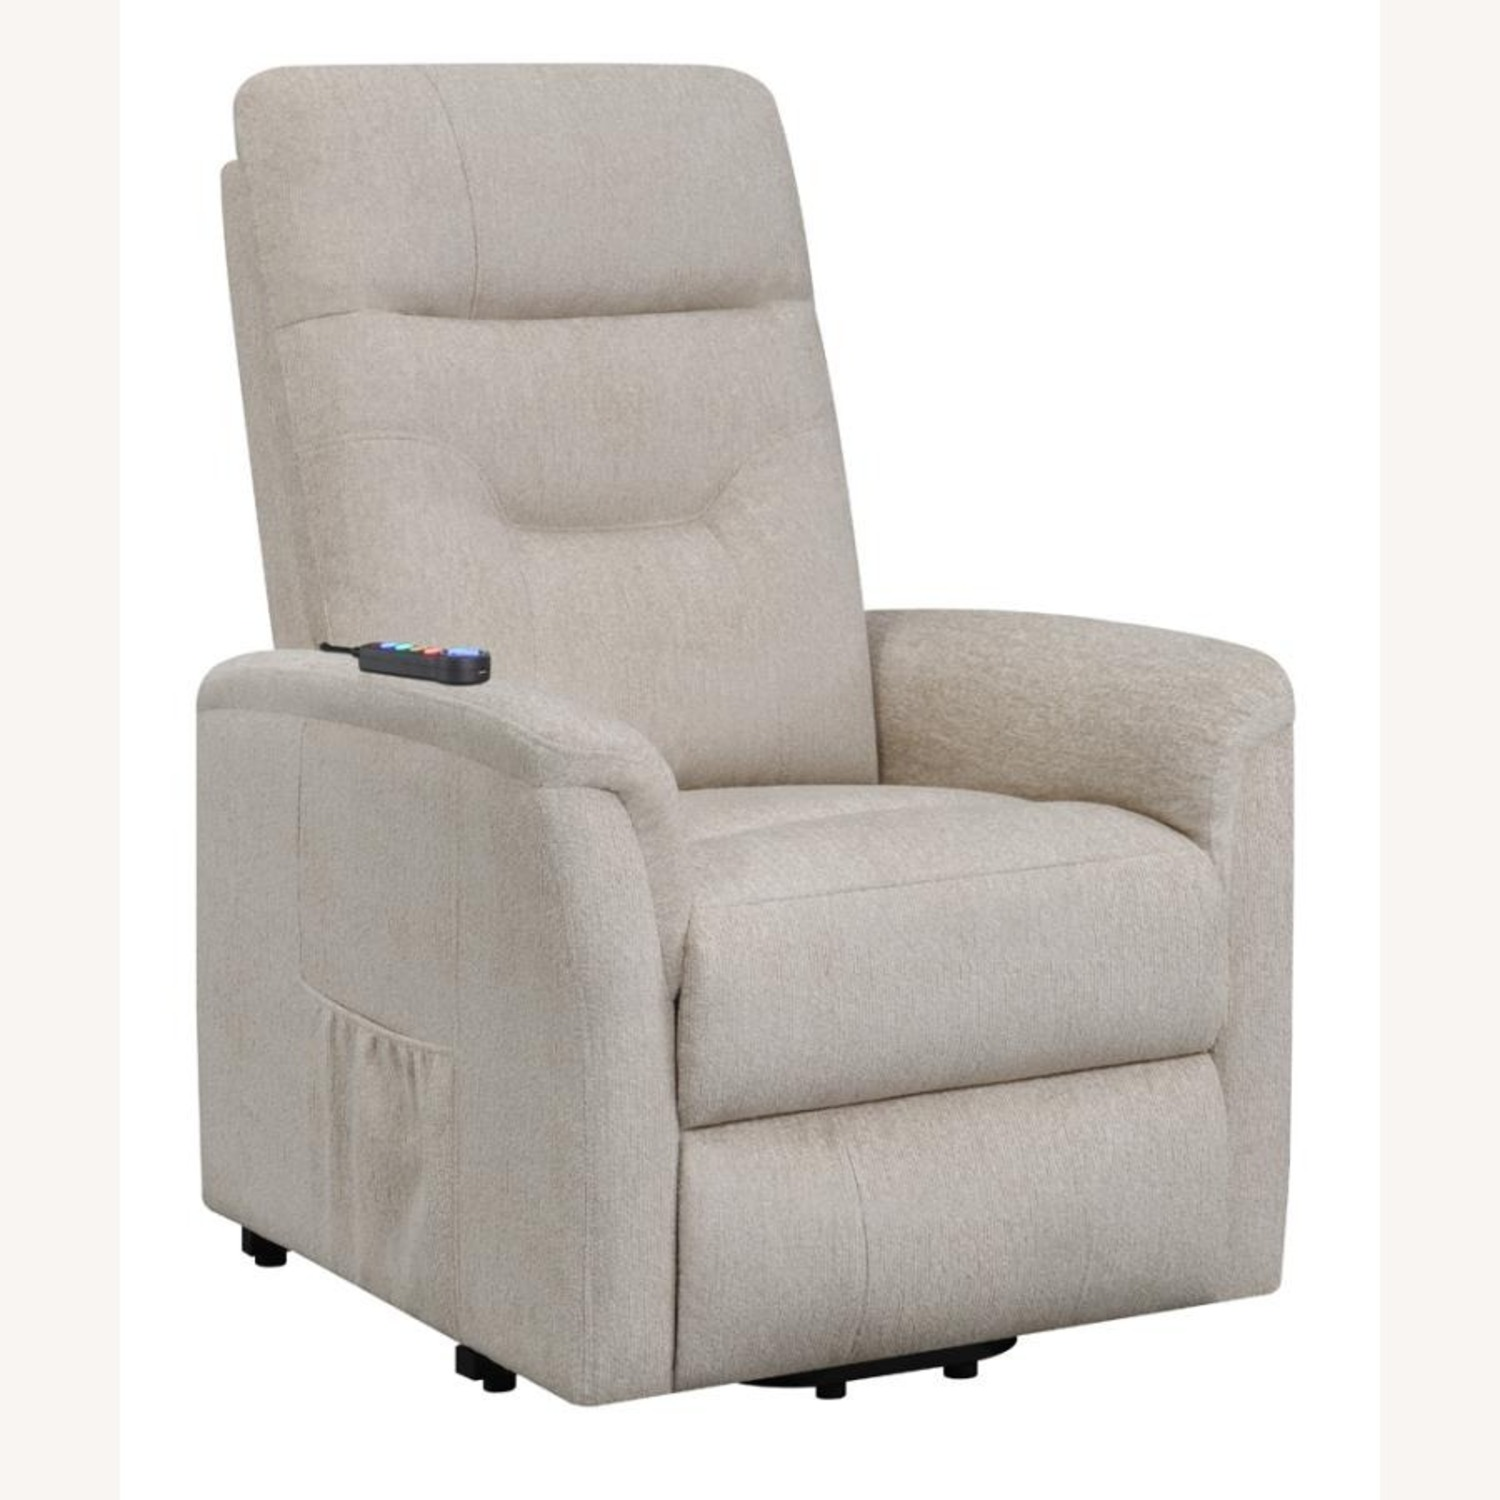 Power Lift Massage Chair In Beige Fabric - image-0